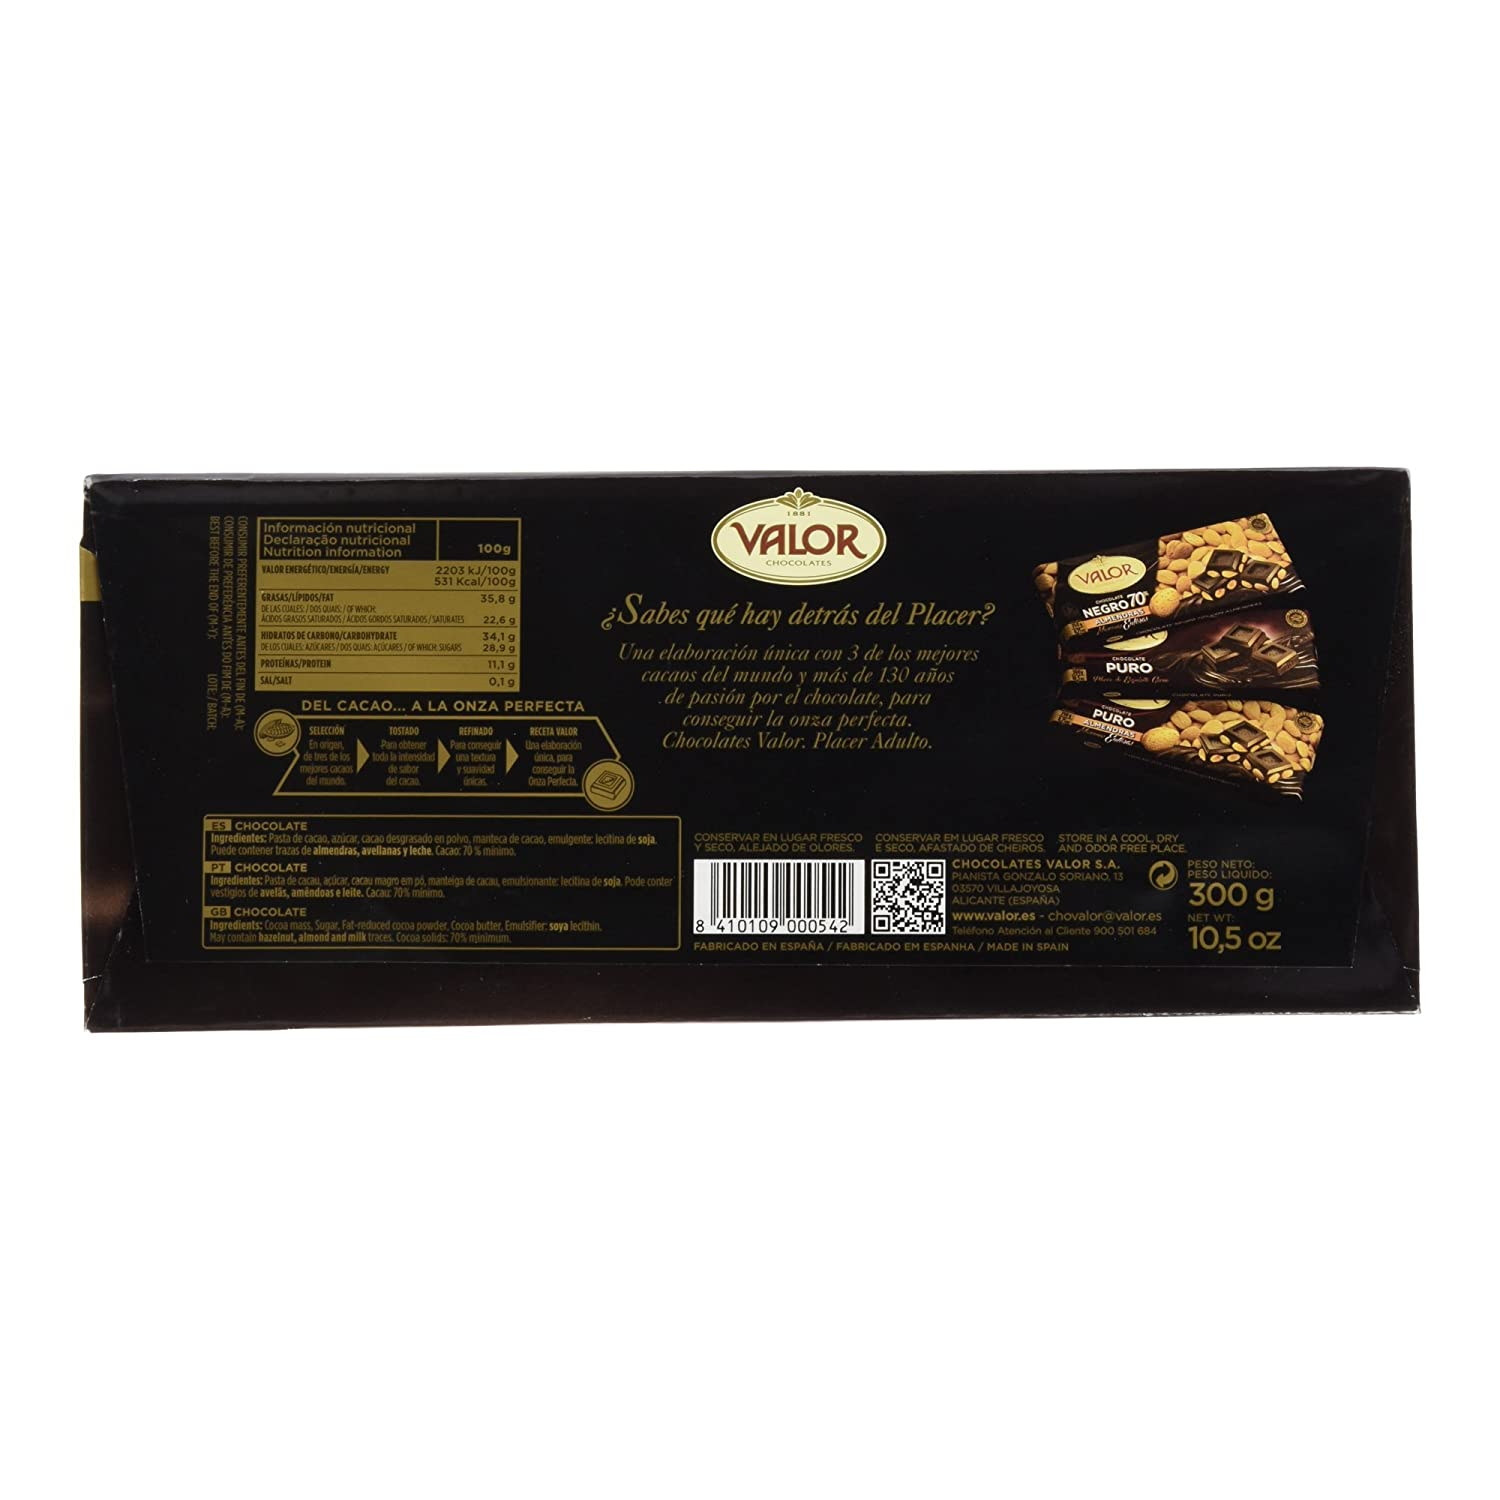 Chocolates Valor - Chocolate negro de 70% cacao - 300 g - [pack de 2]: Amazon.es: Alimentación y bebidas